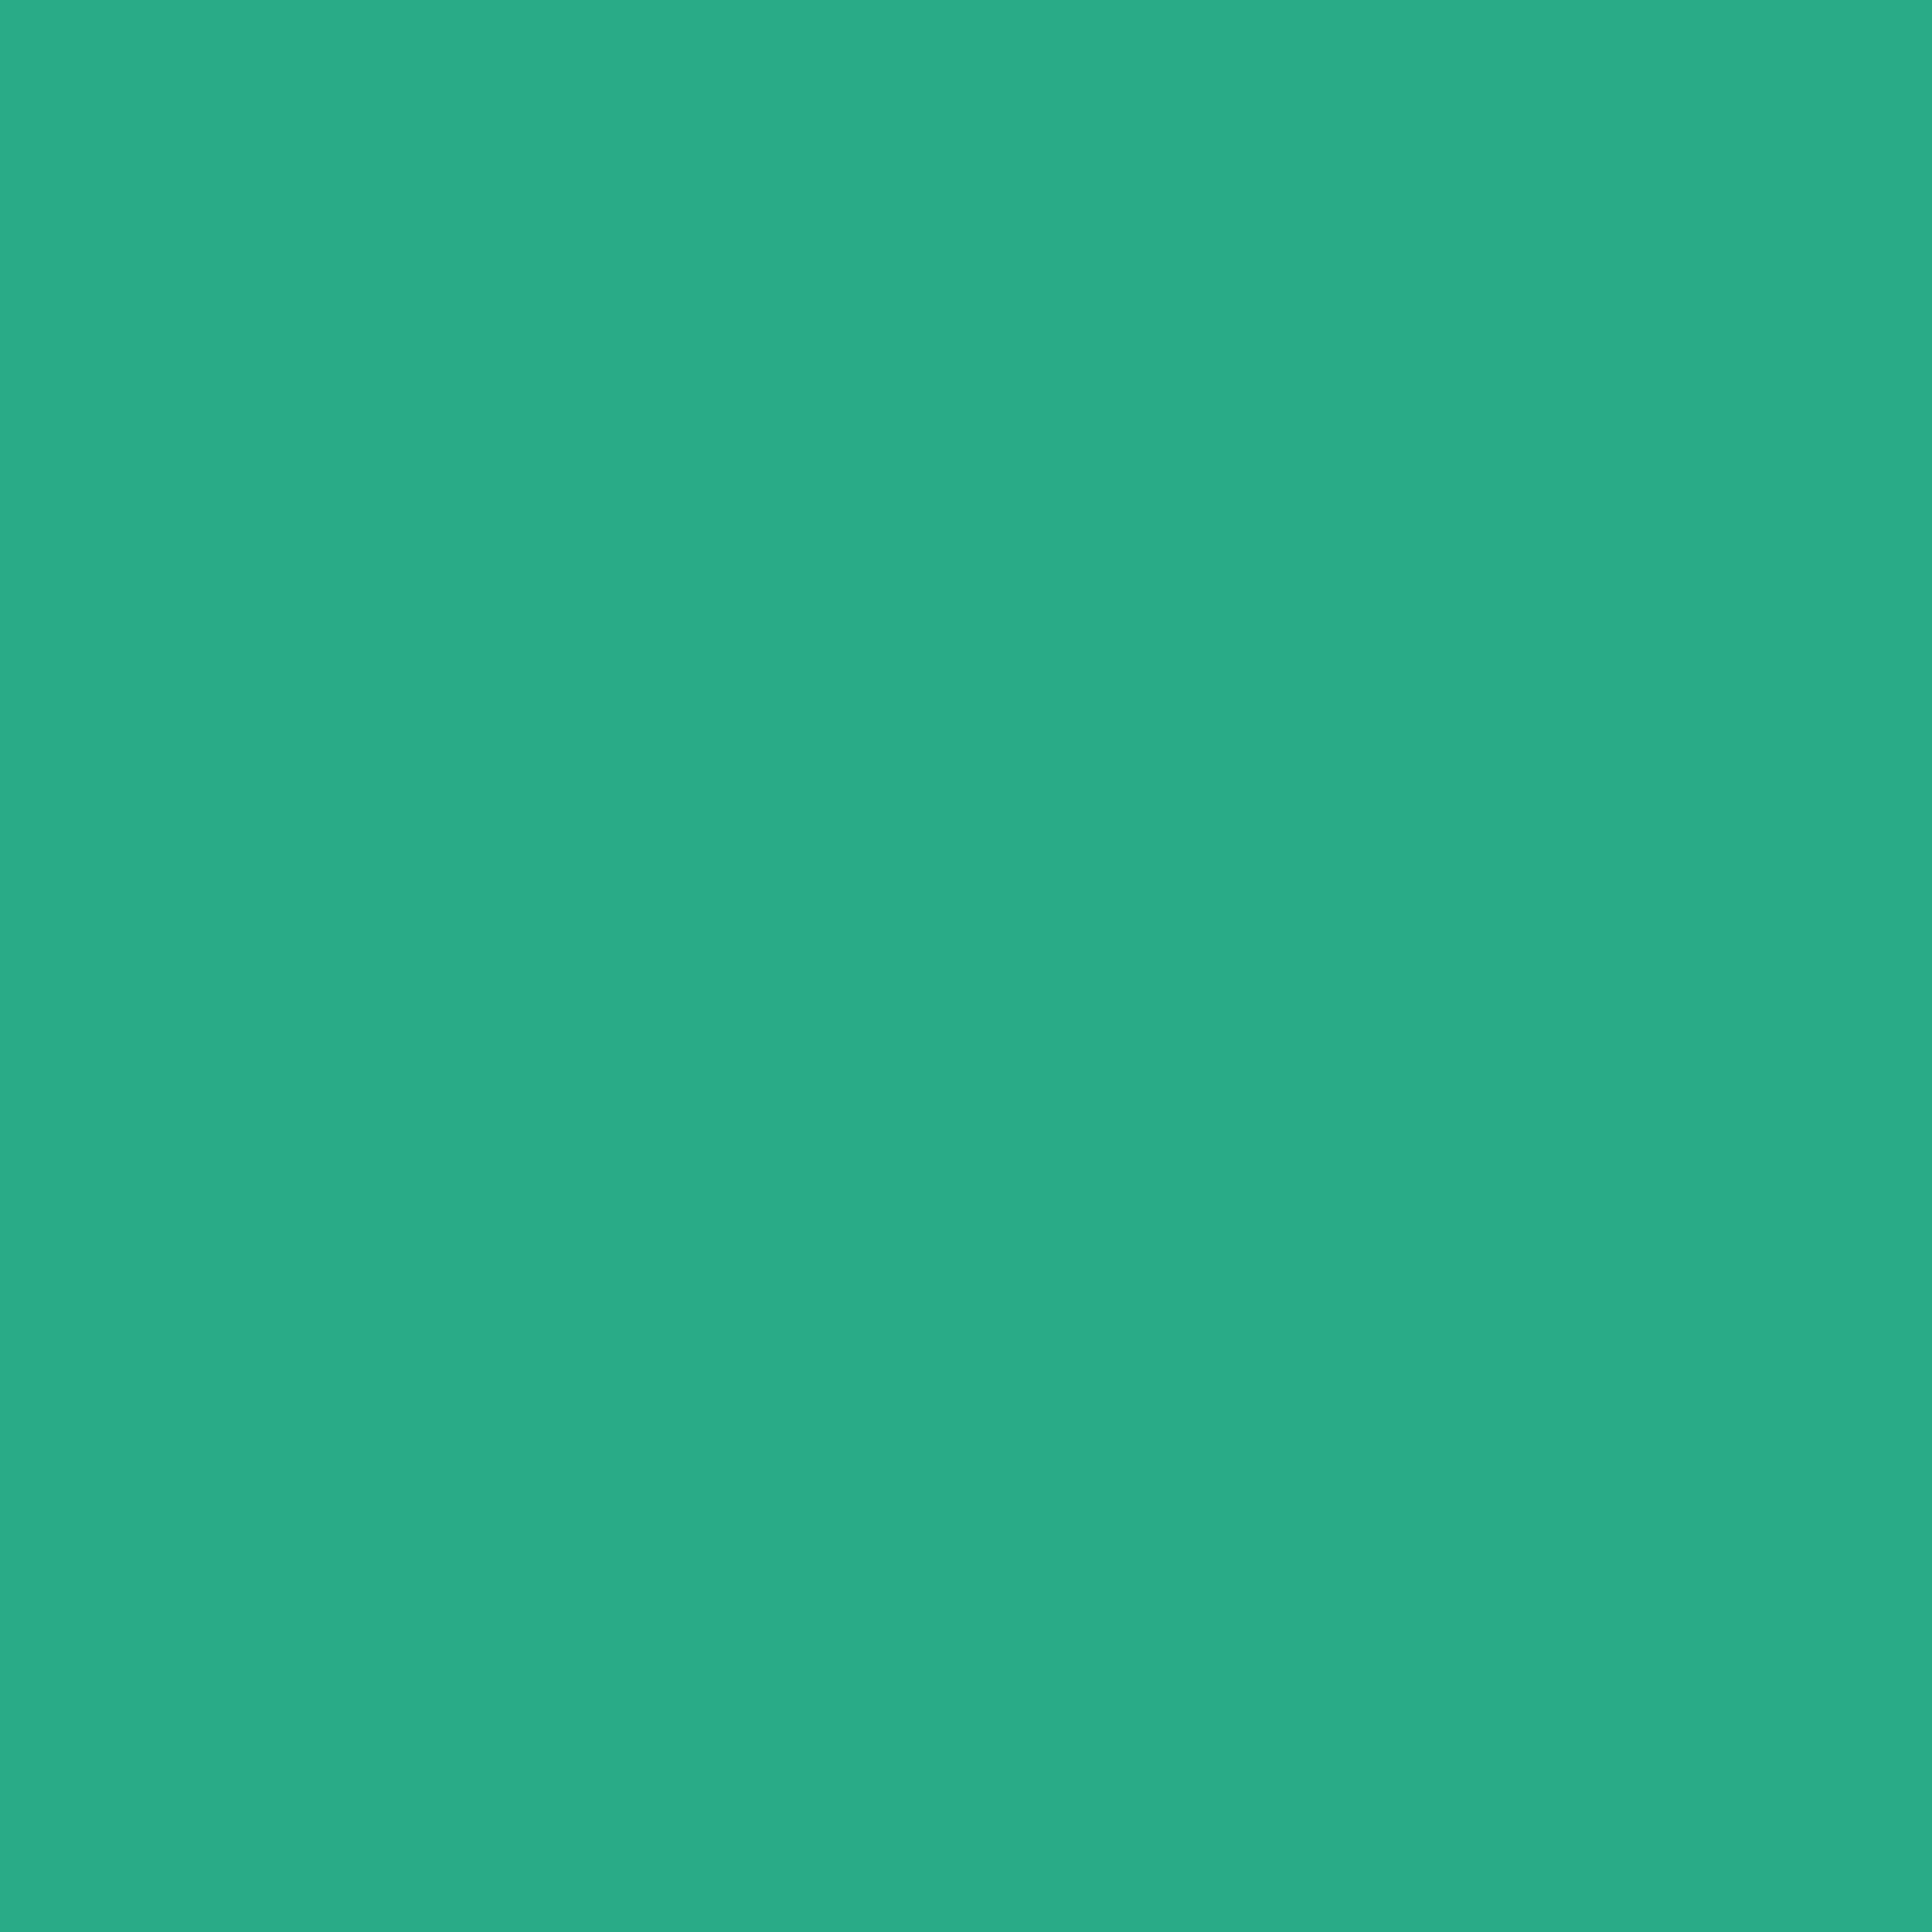 3600x3600 Jungle Green Solid Color Background